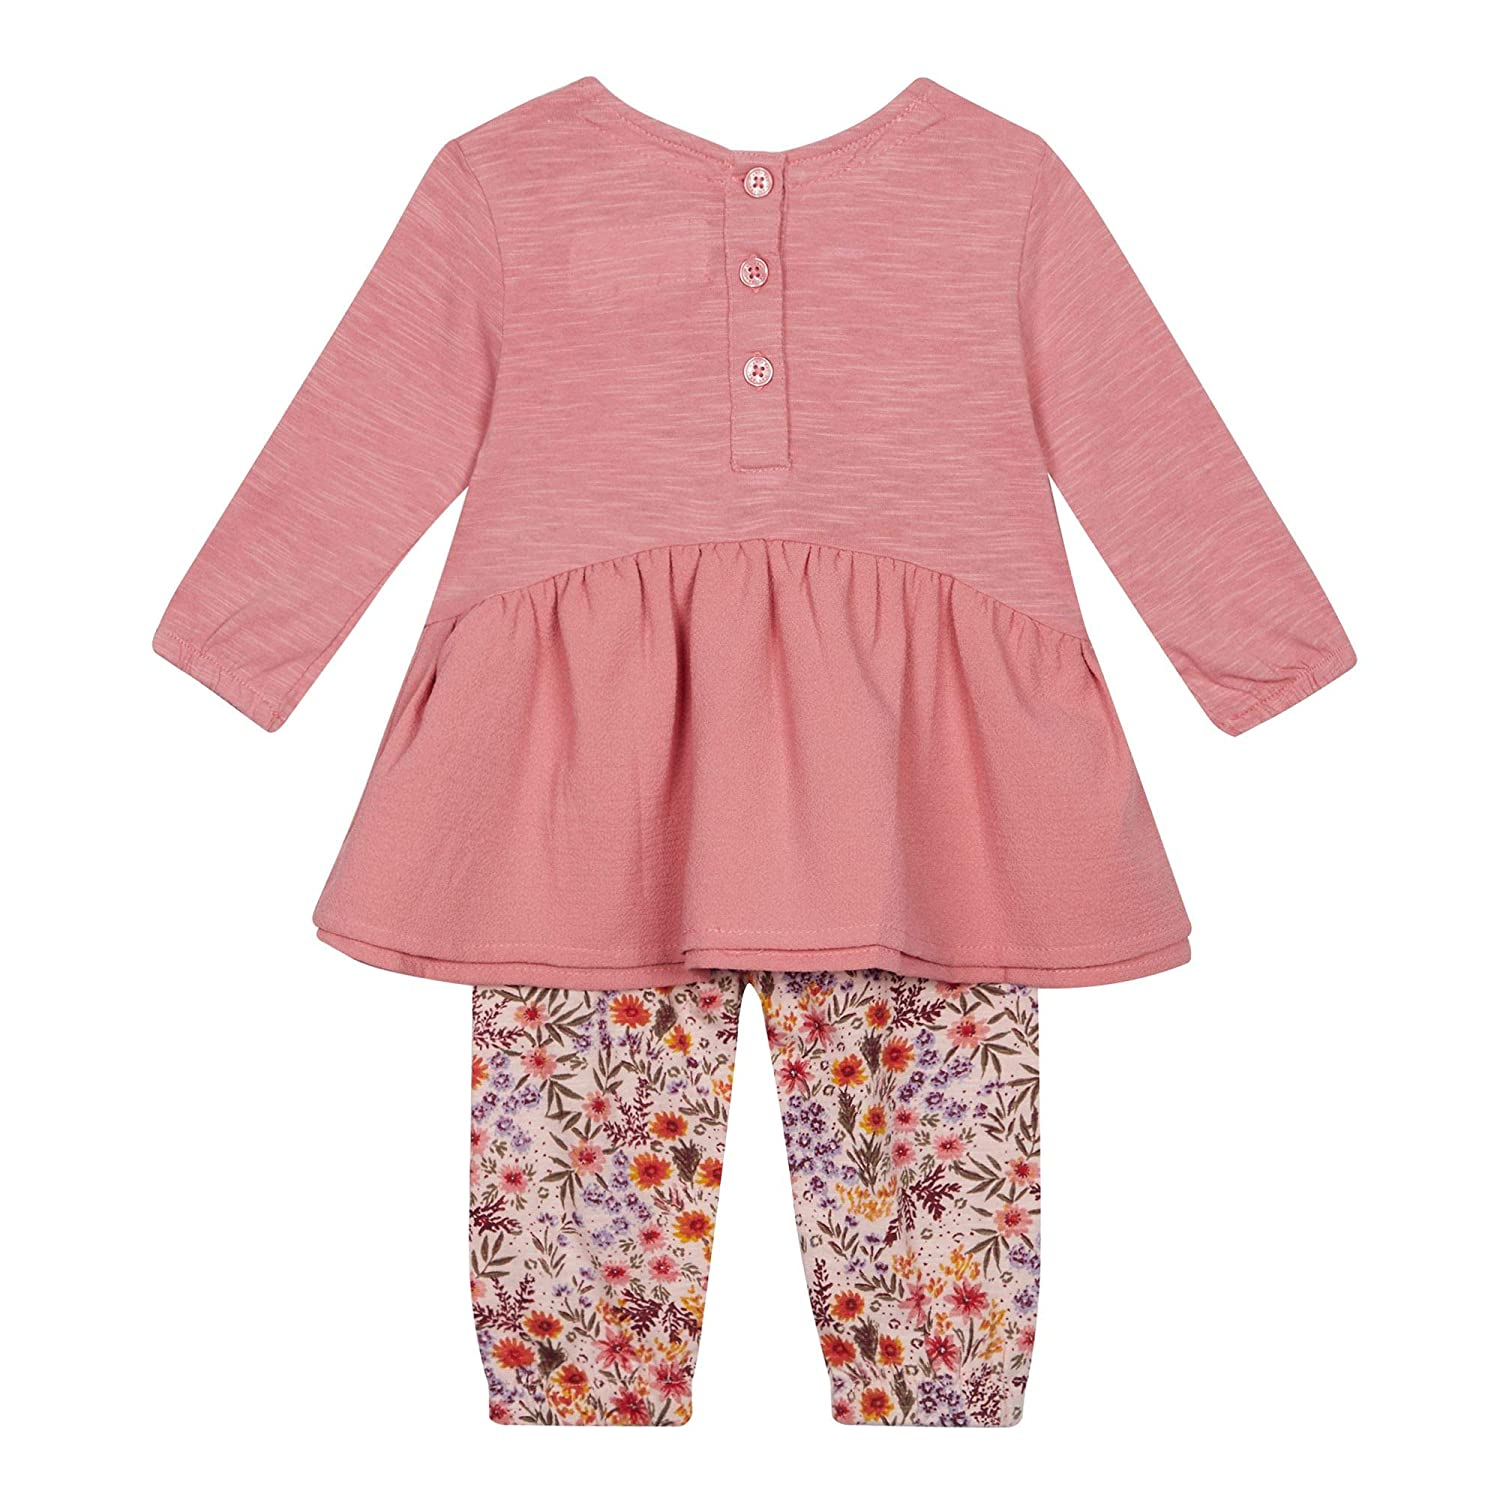 8352a30f6 Mantaray Kids Baby Girls  Dark Pink Floral Embroidered Top and ...